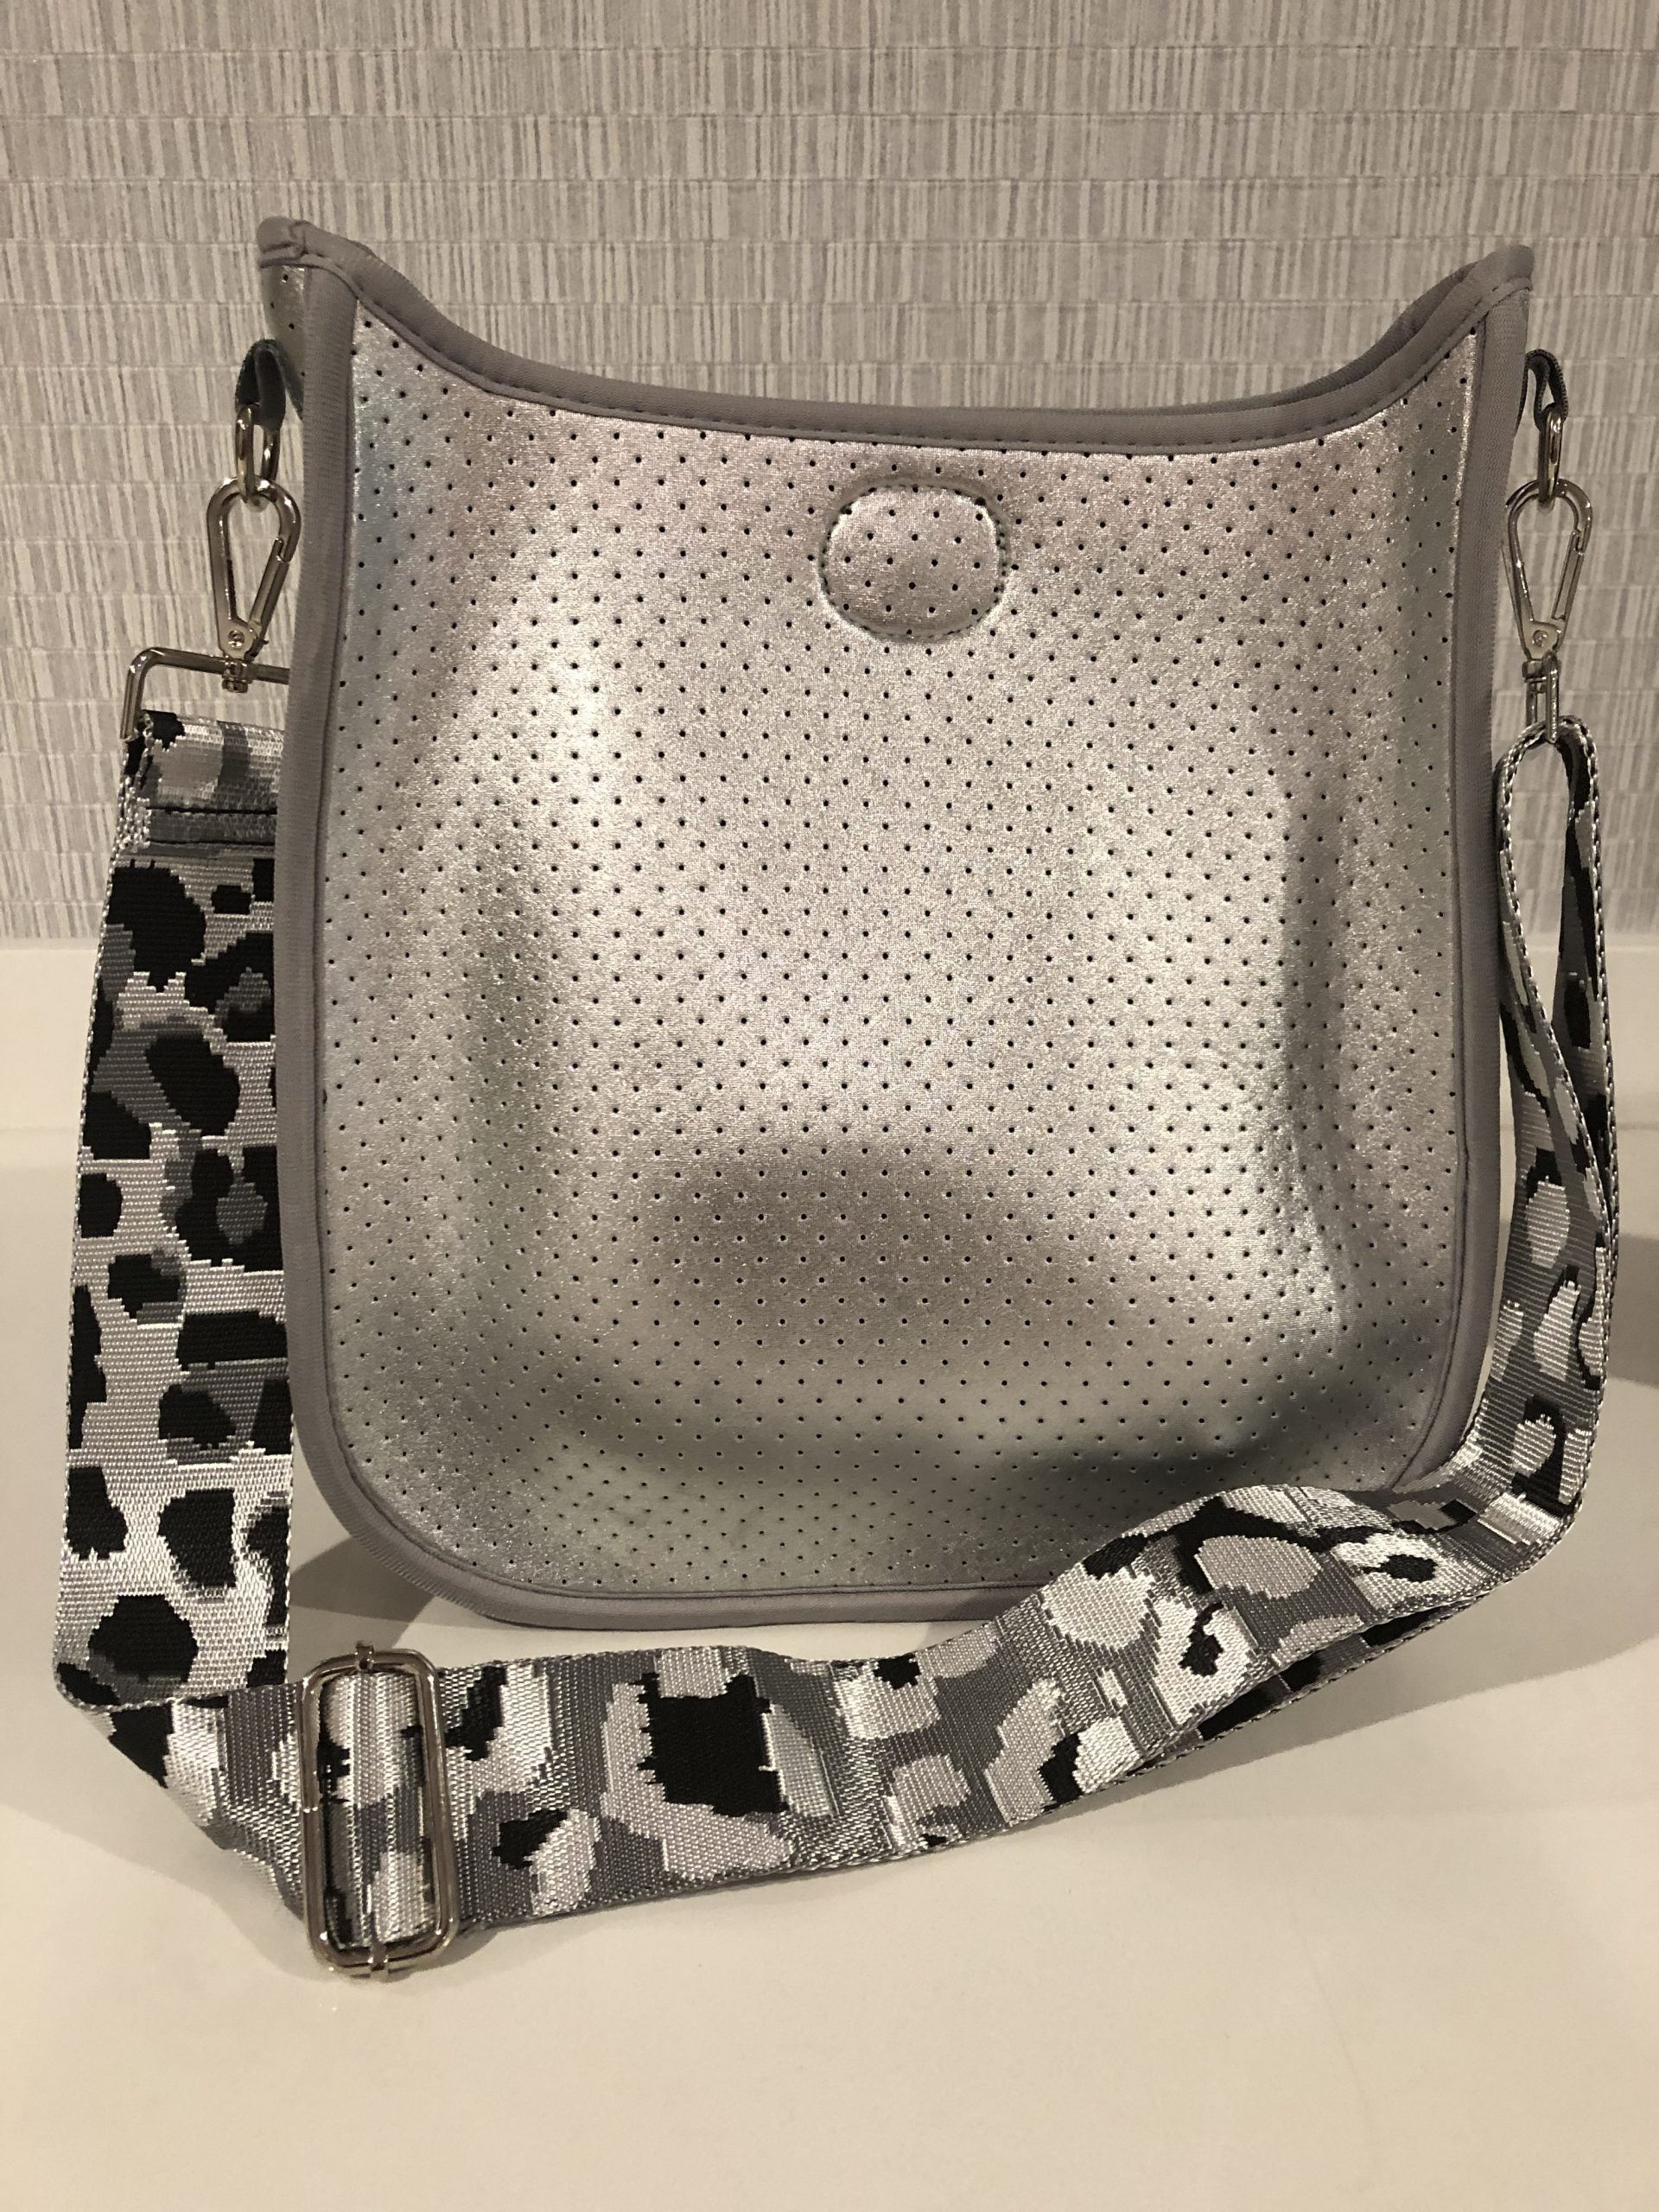 Large Perforated Vegan Leather Messenger- Silver with Leopard Guitar Strap - Susie O's Handbags